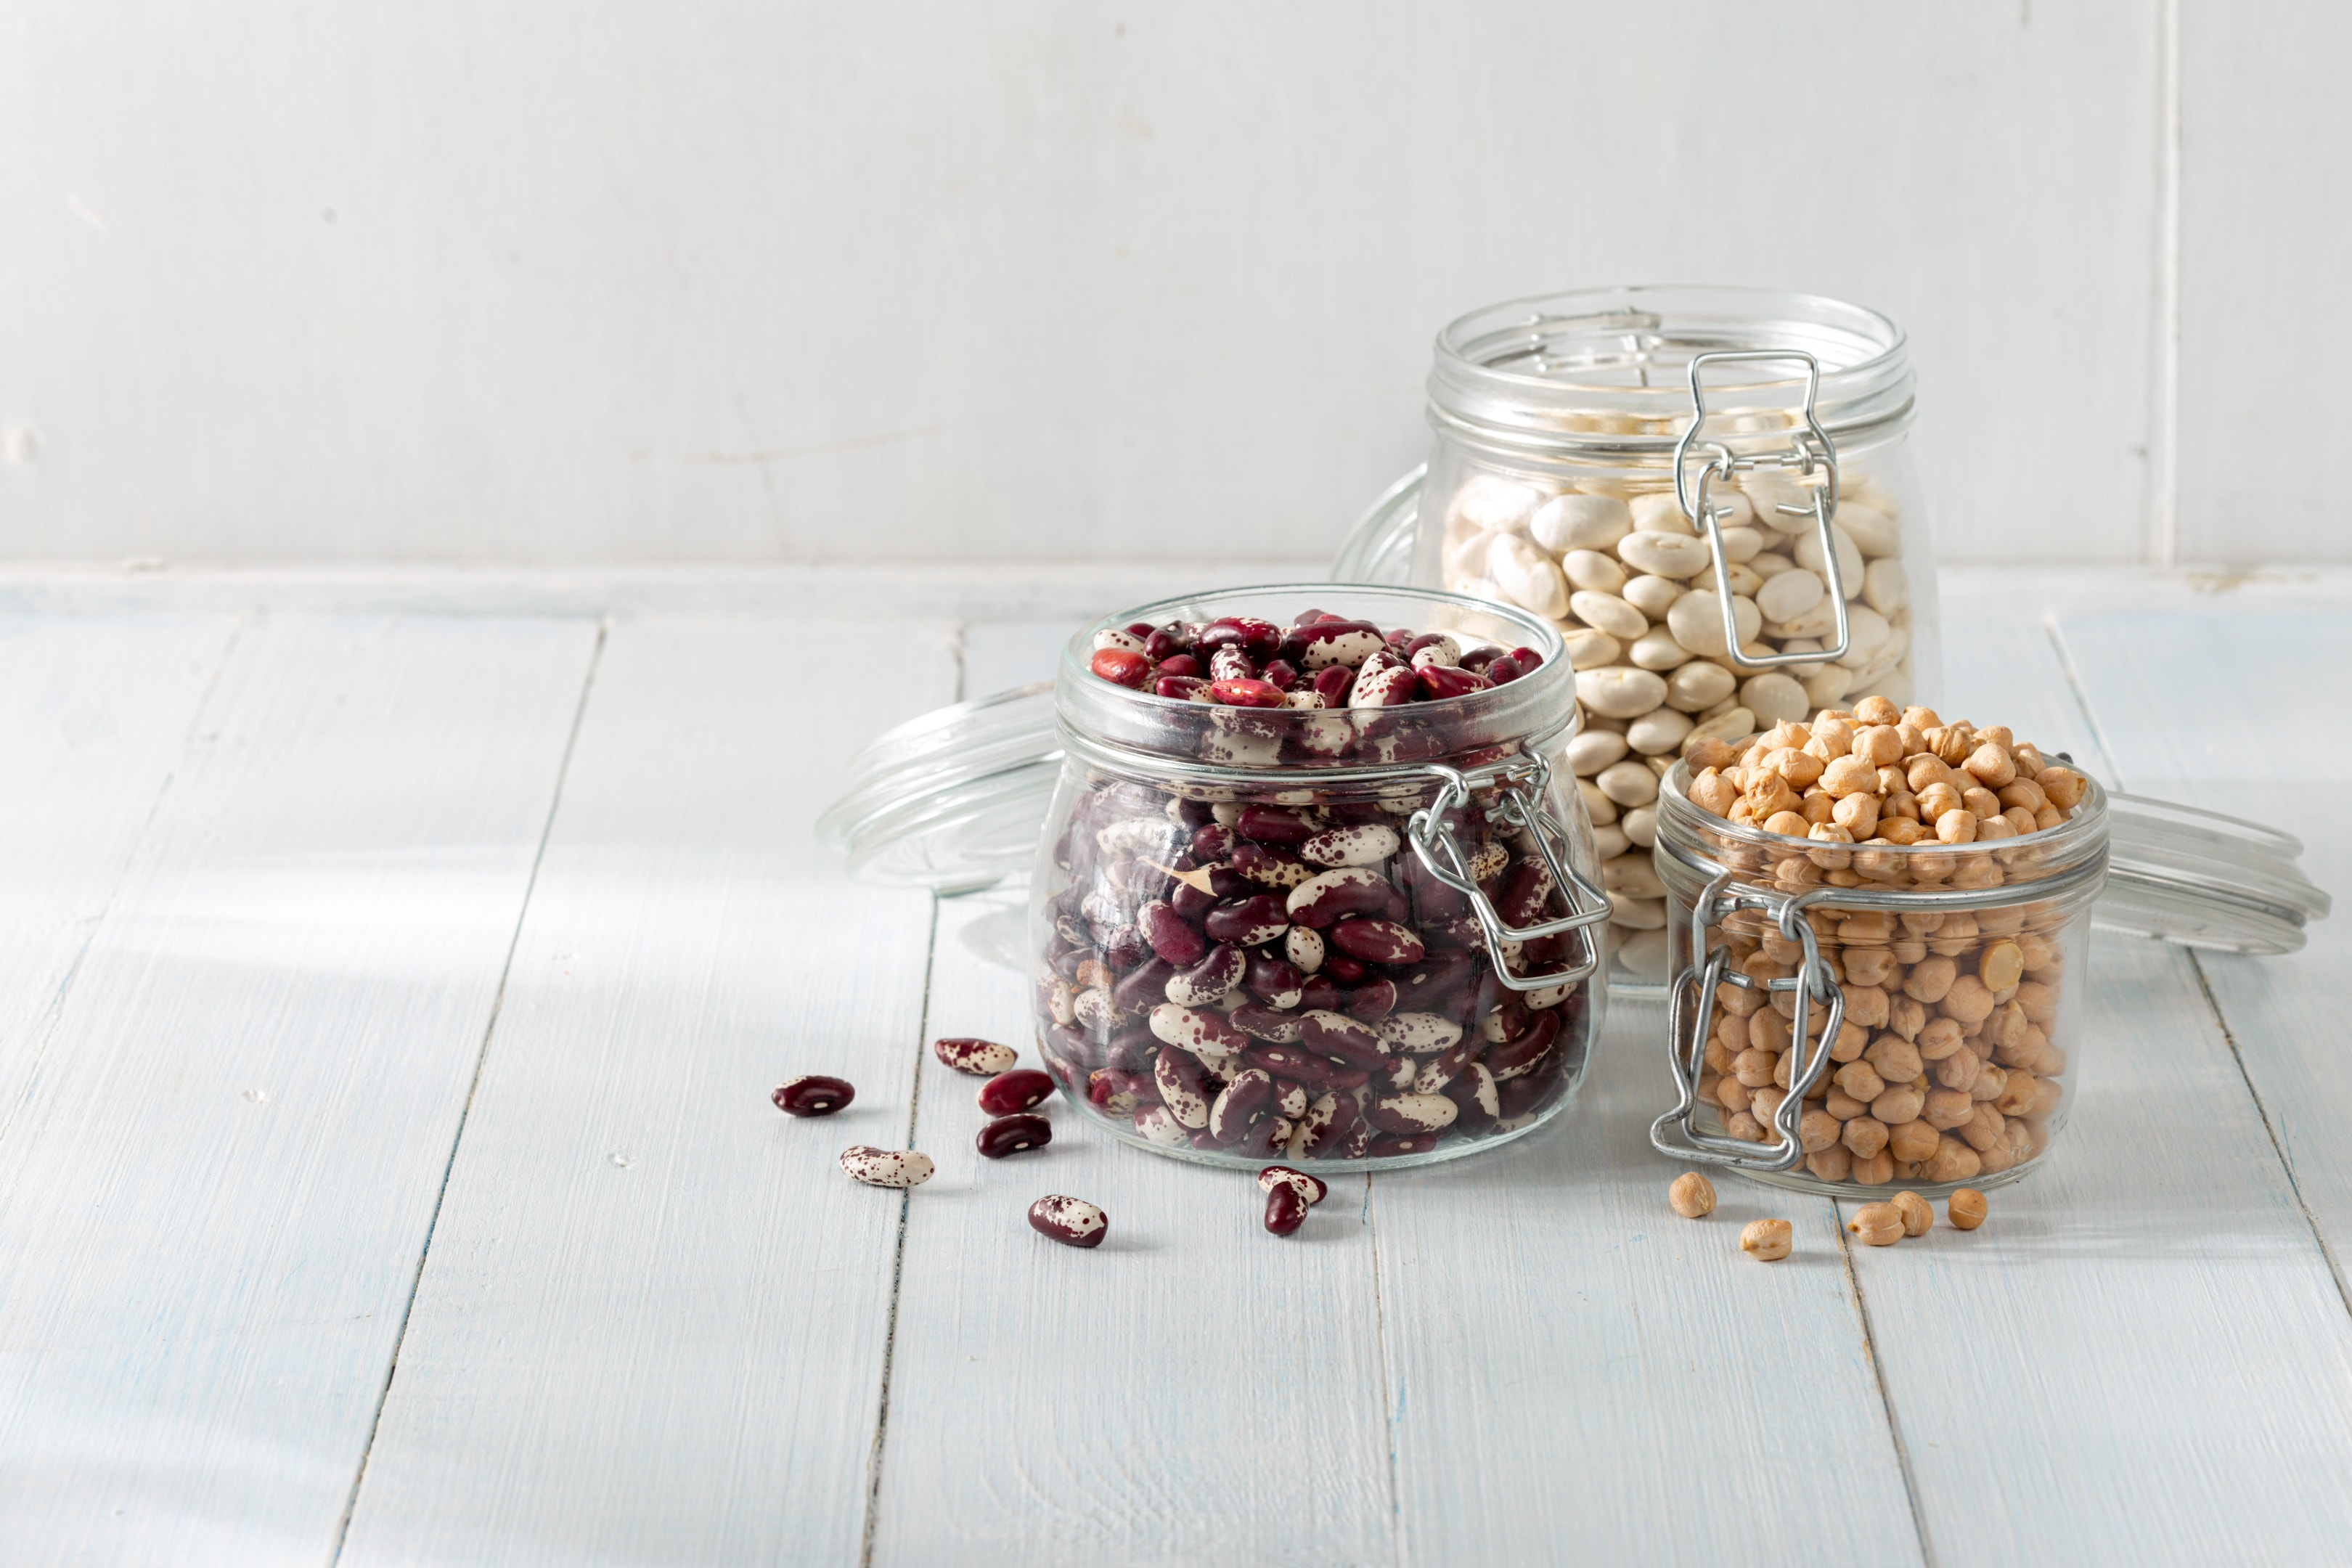 Legumes in glass jars